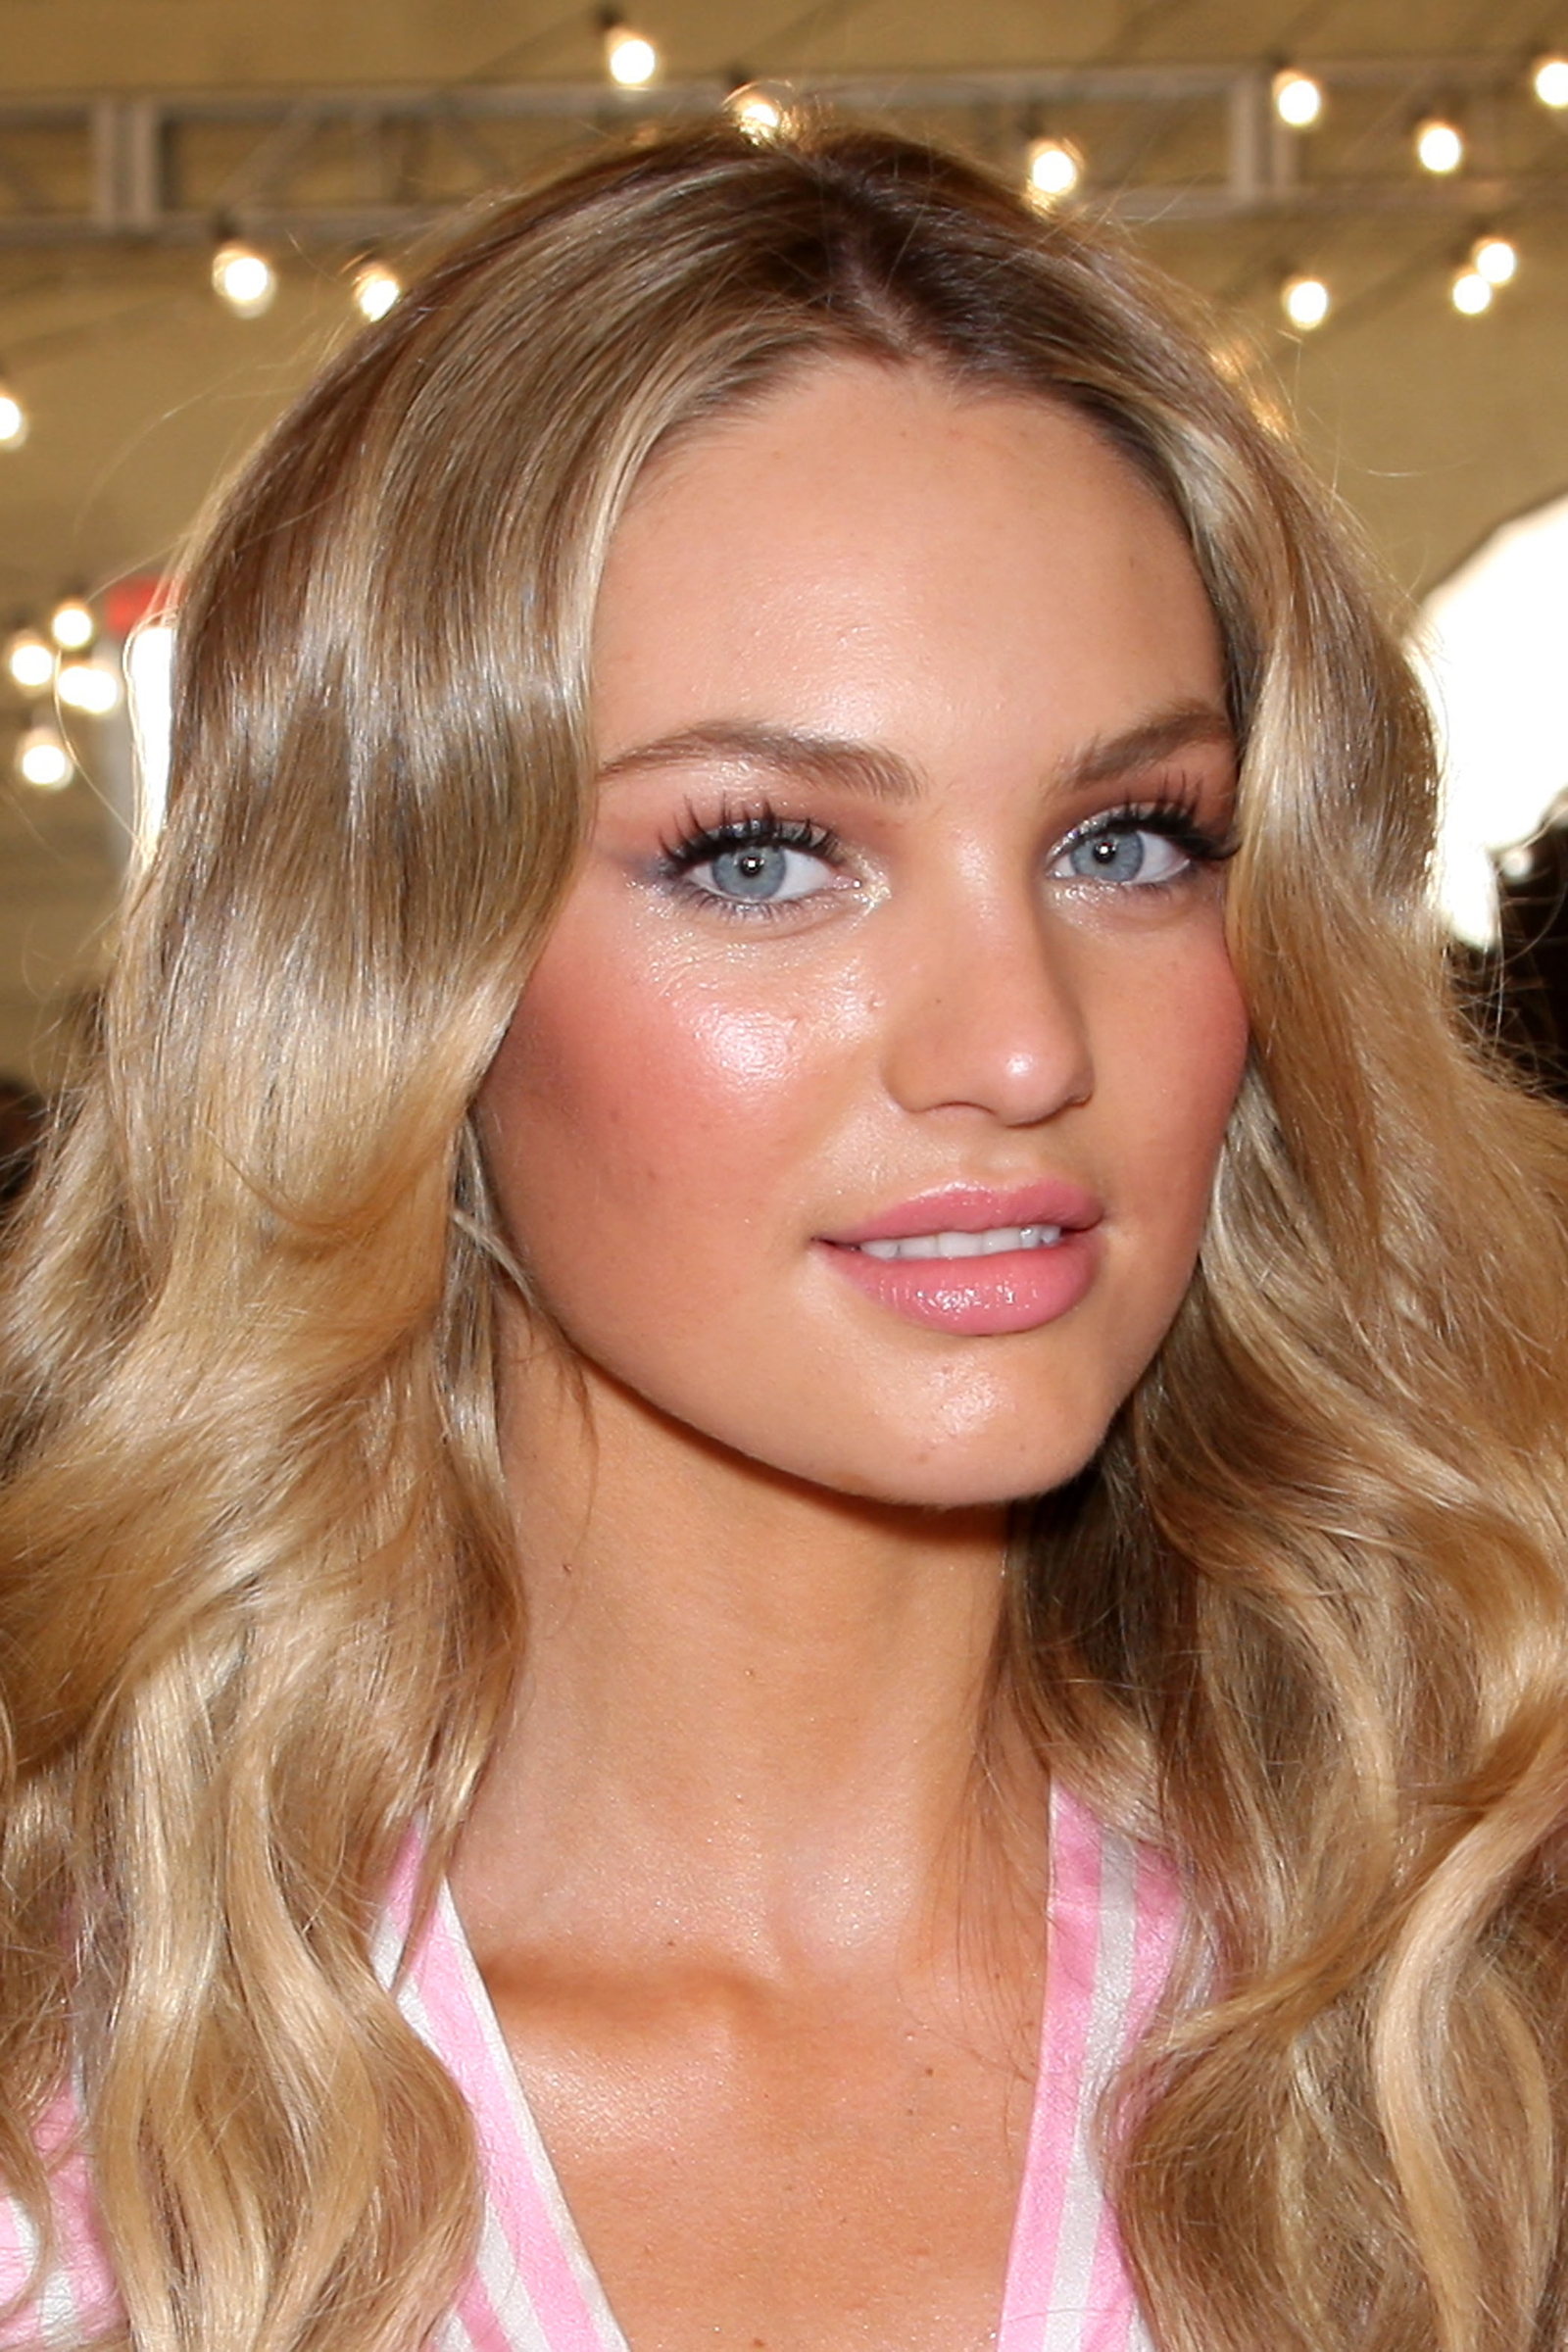 Candice Swanepoel, Victoria's Secret Model